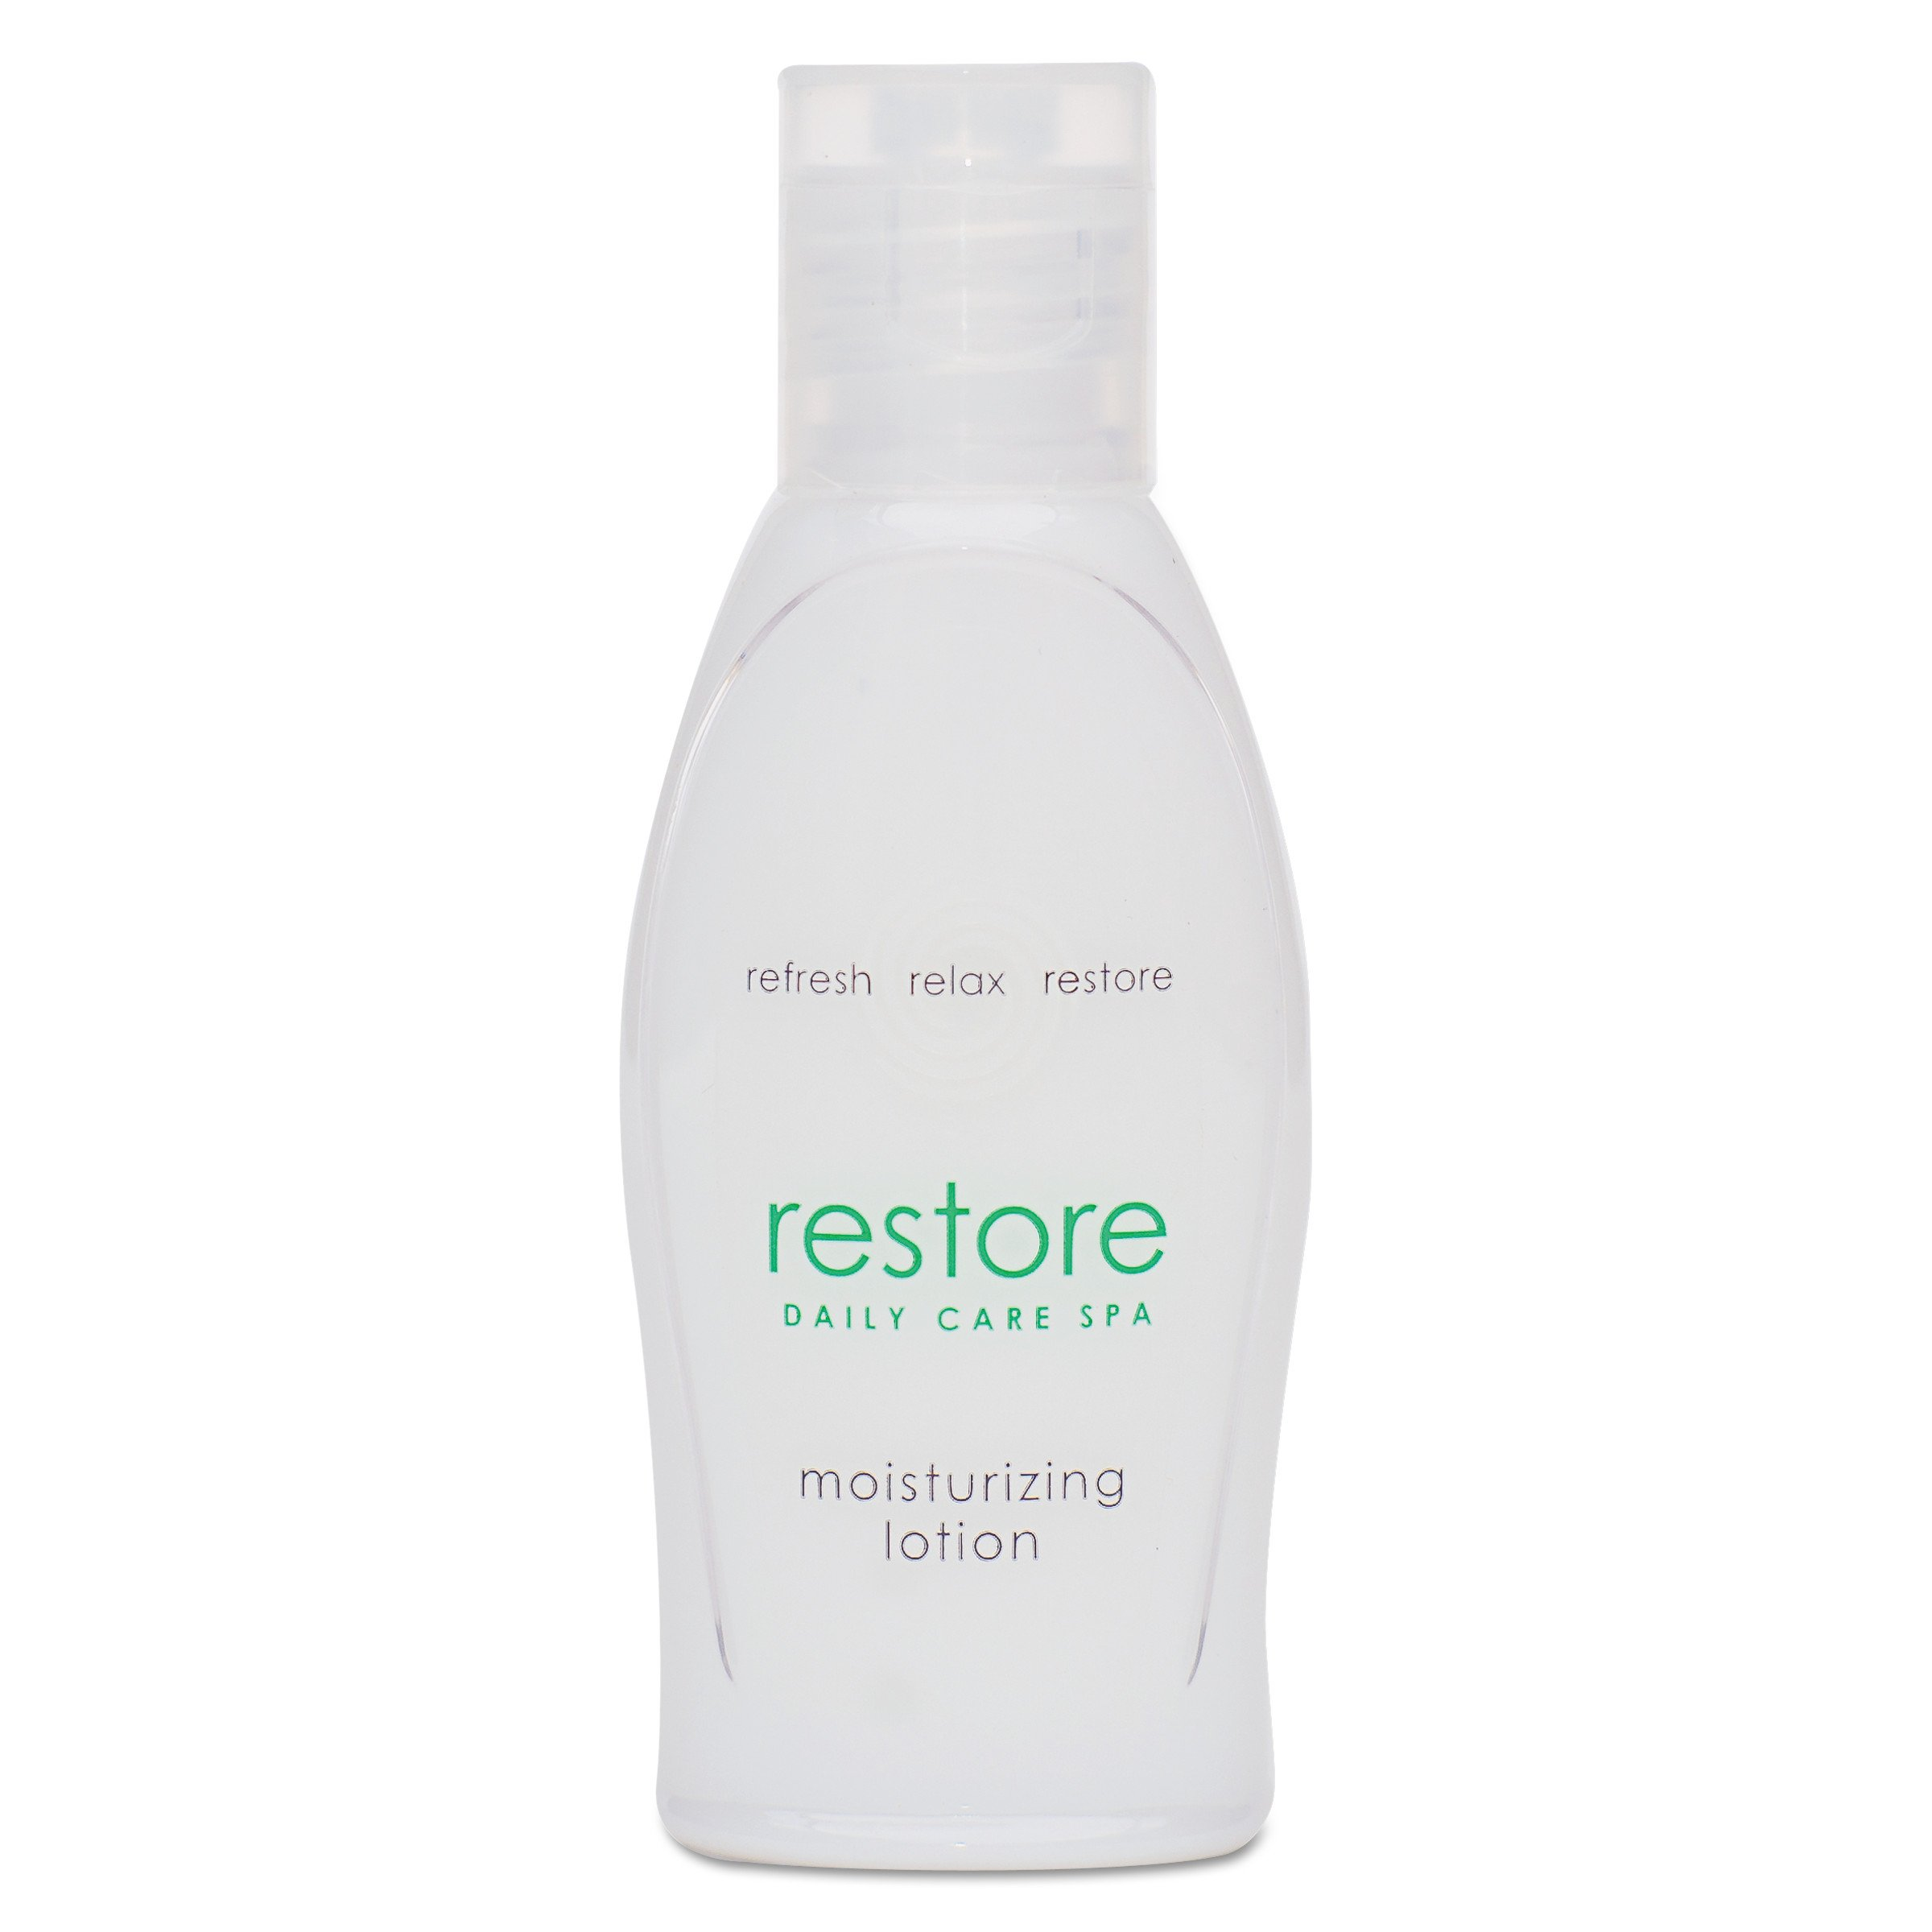 Dial Amenities 00026 Restore Hand & Body Lotion, Aloe Scent, 1 oz Bottle (Case of 288)